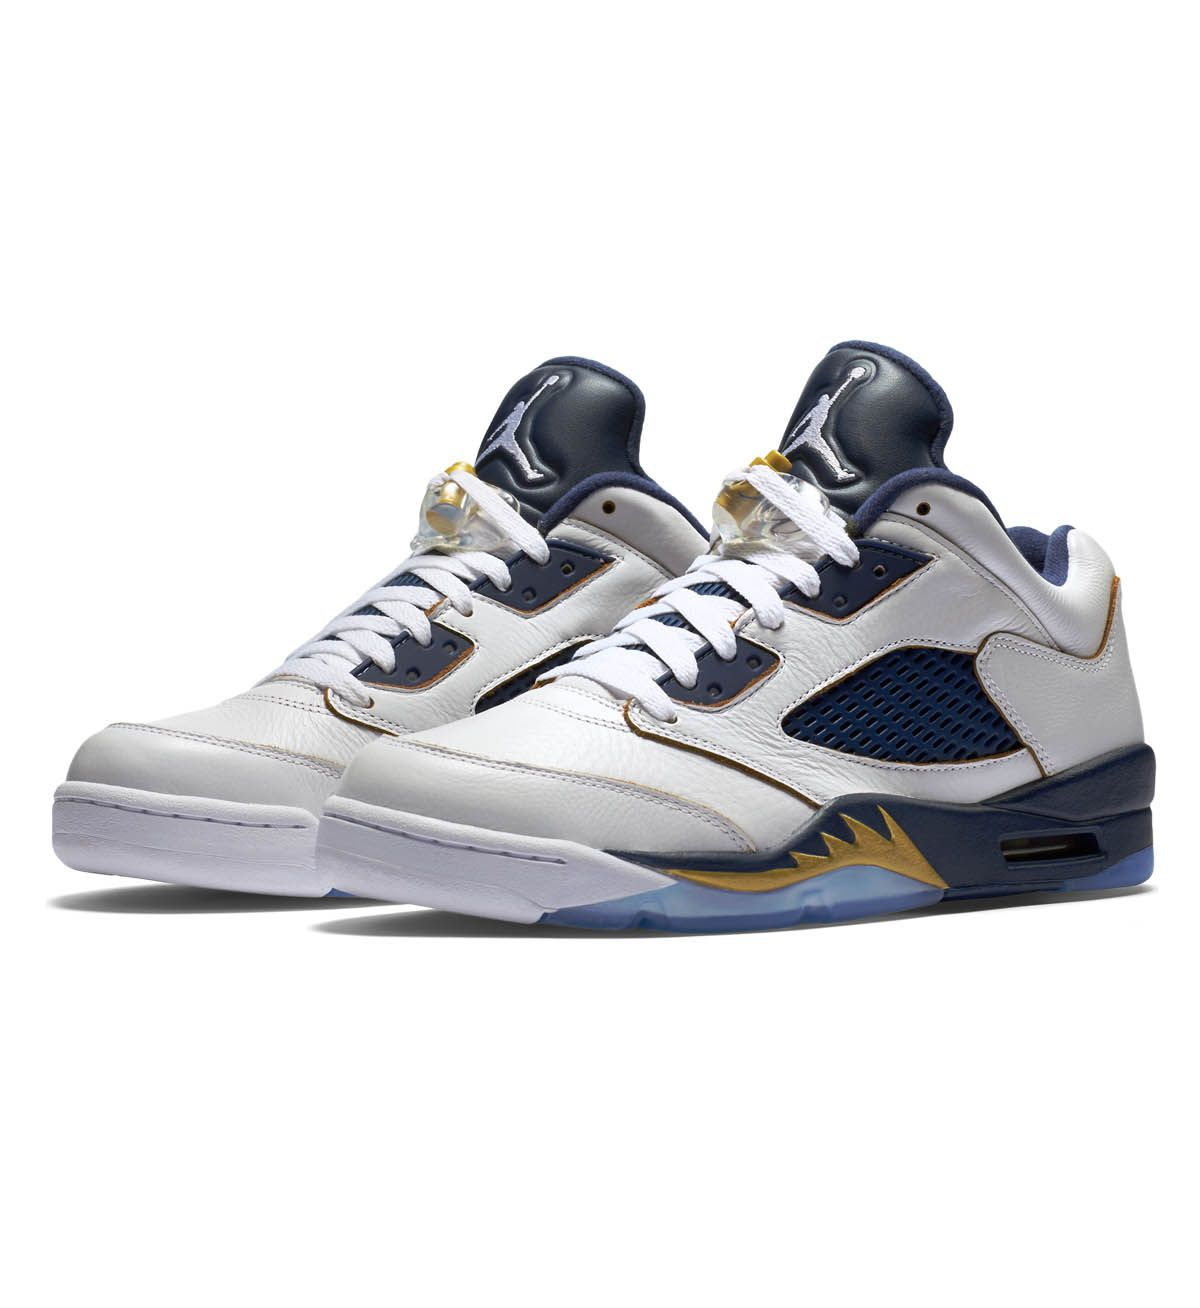 324834af461443 ... release date nike air jordan 5 retro low white metallic gold star navy nike  air 20fad